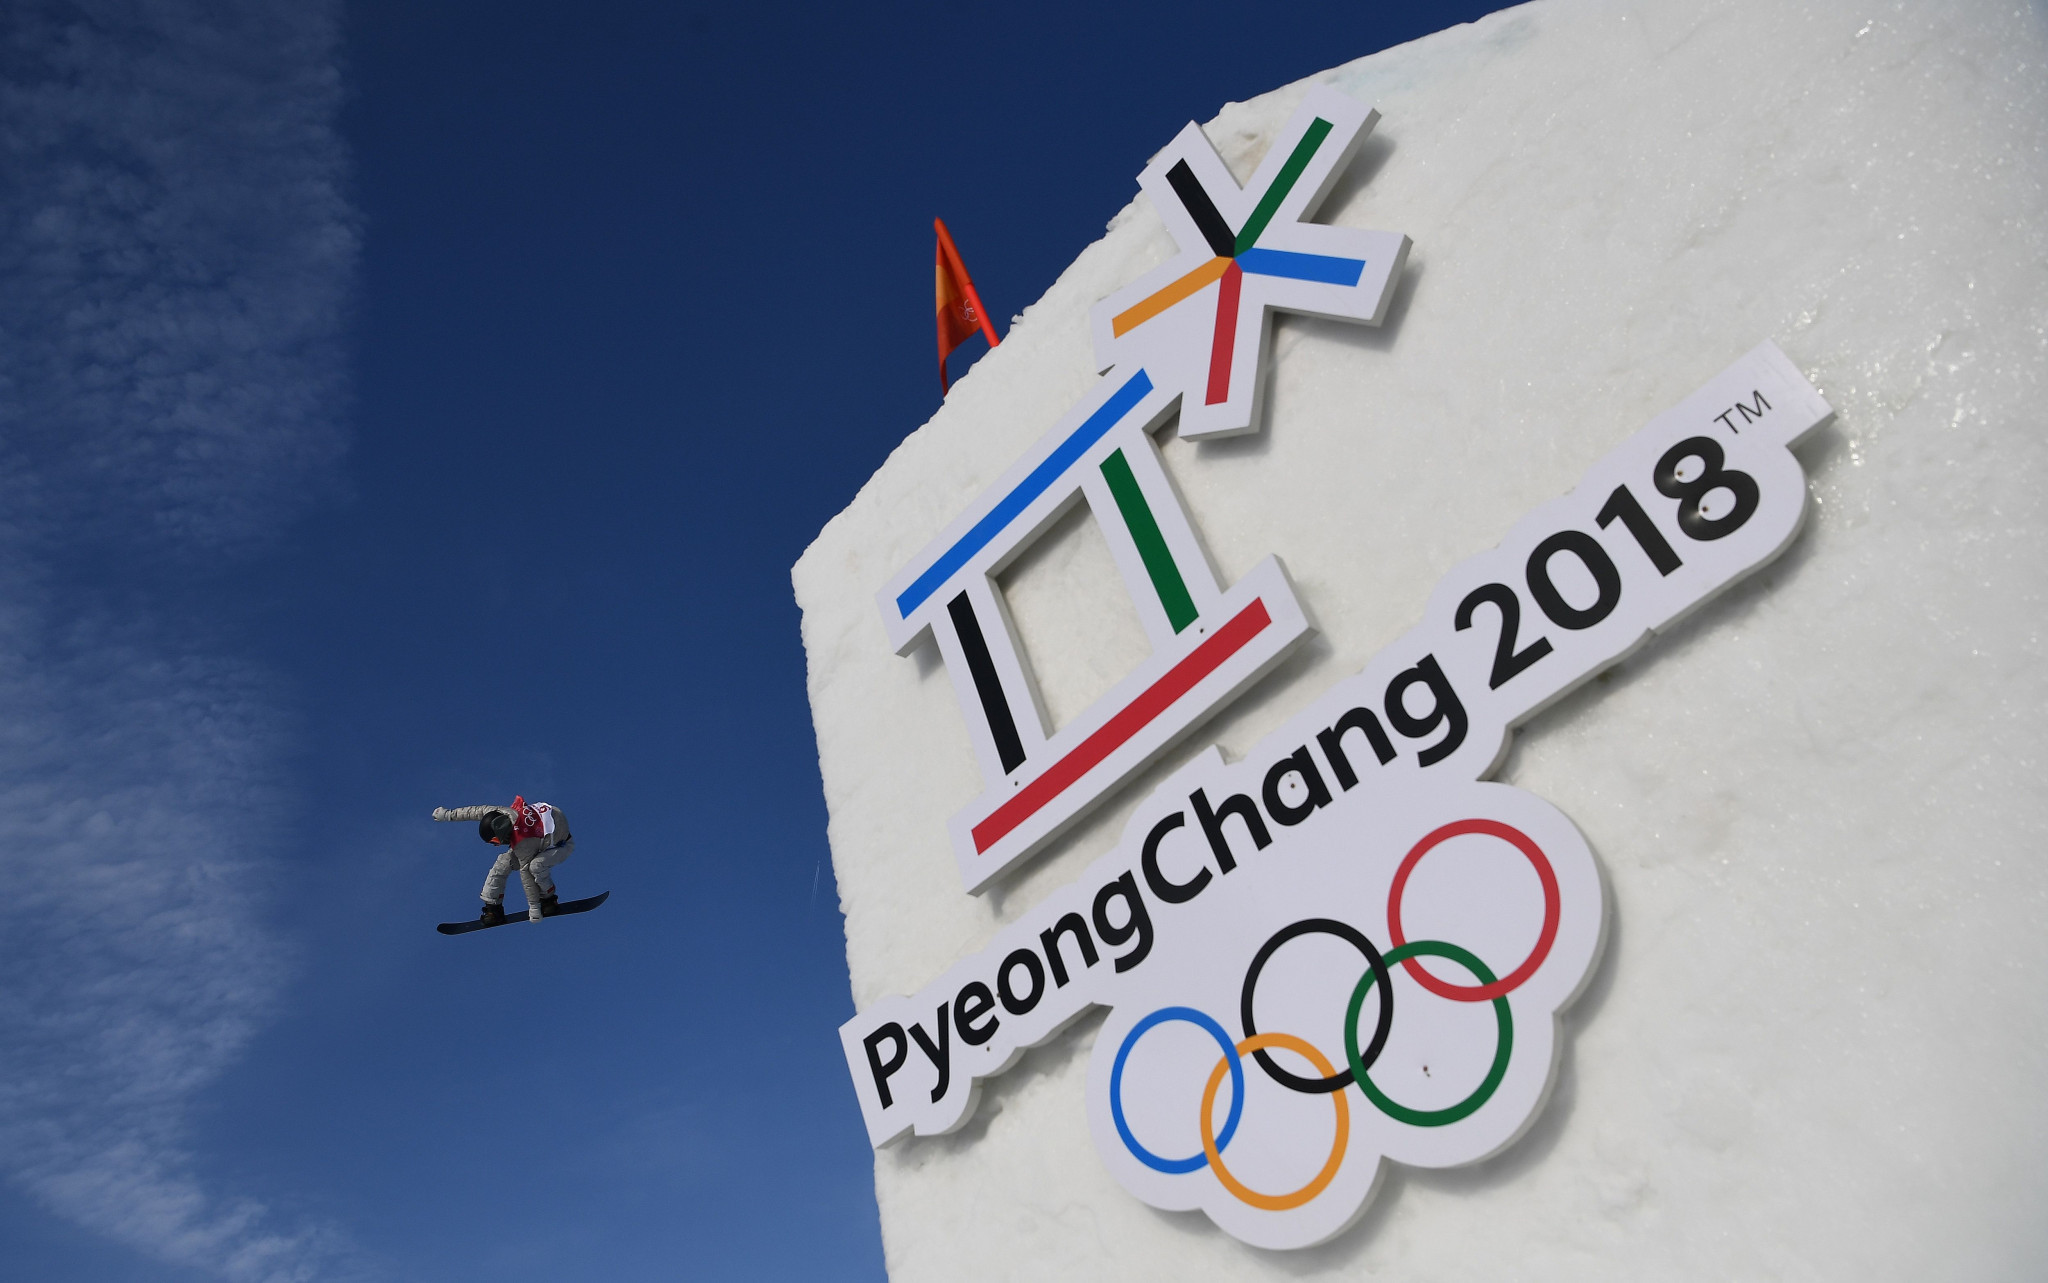 IOC confirm Pyeongchang 2018 surplus still predicted despite reports Gangwon Province left with debts